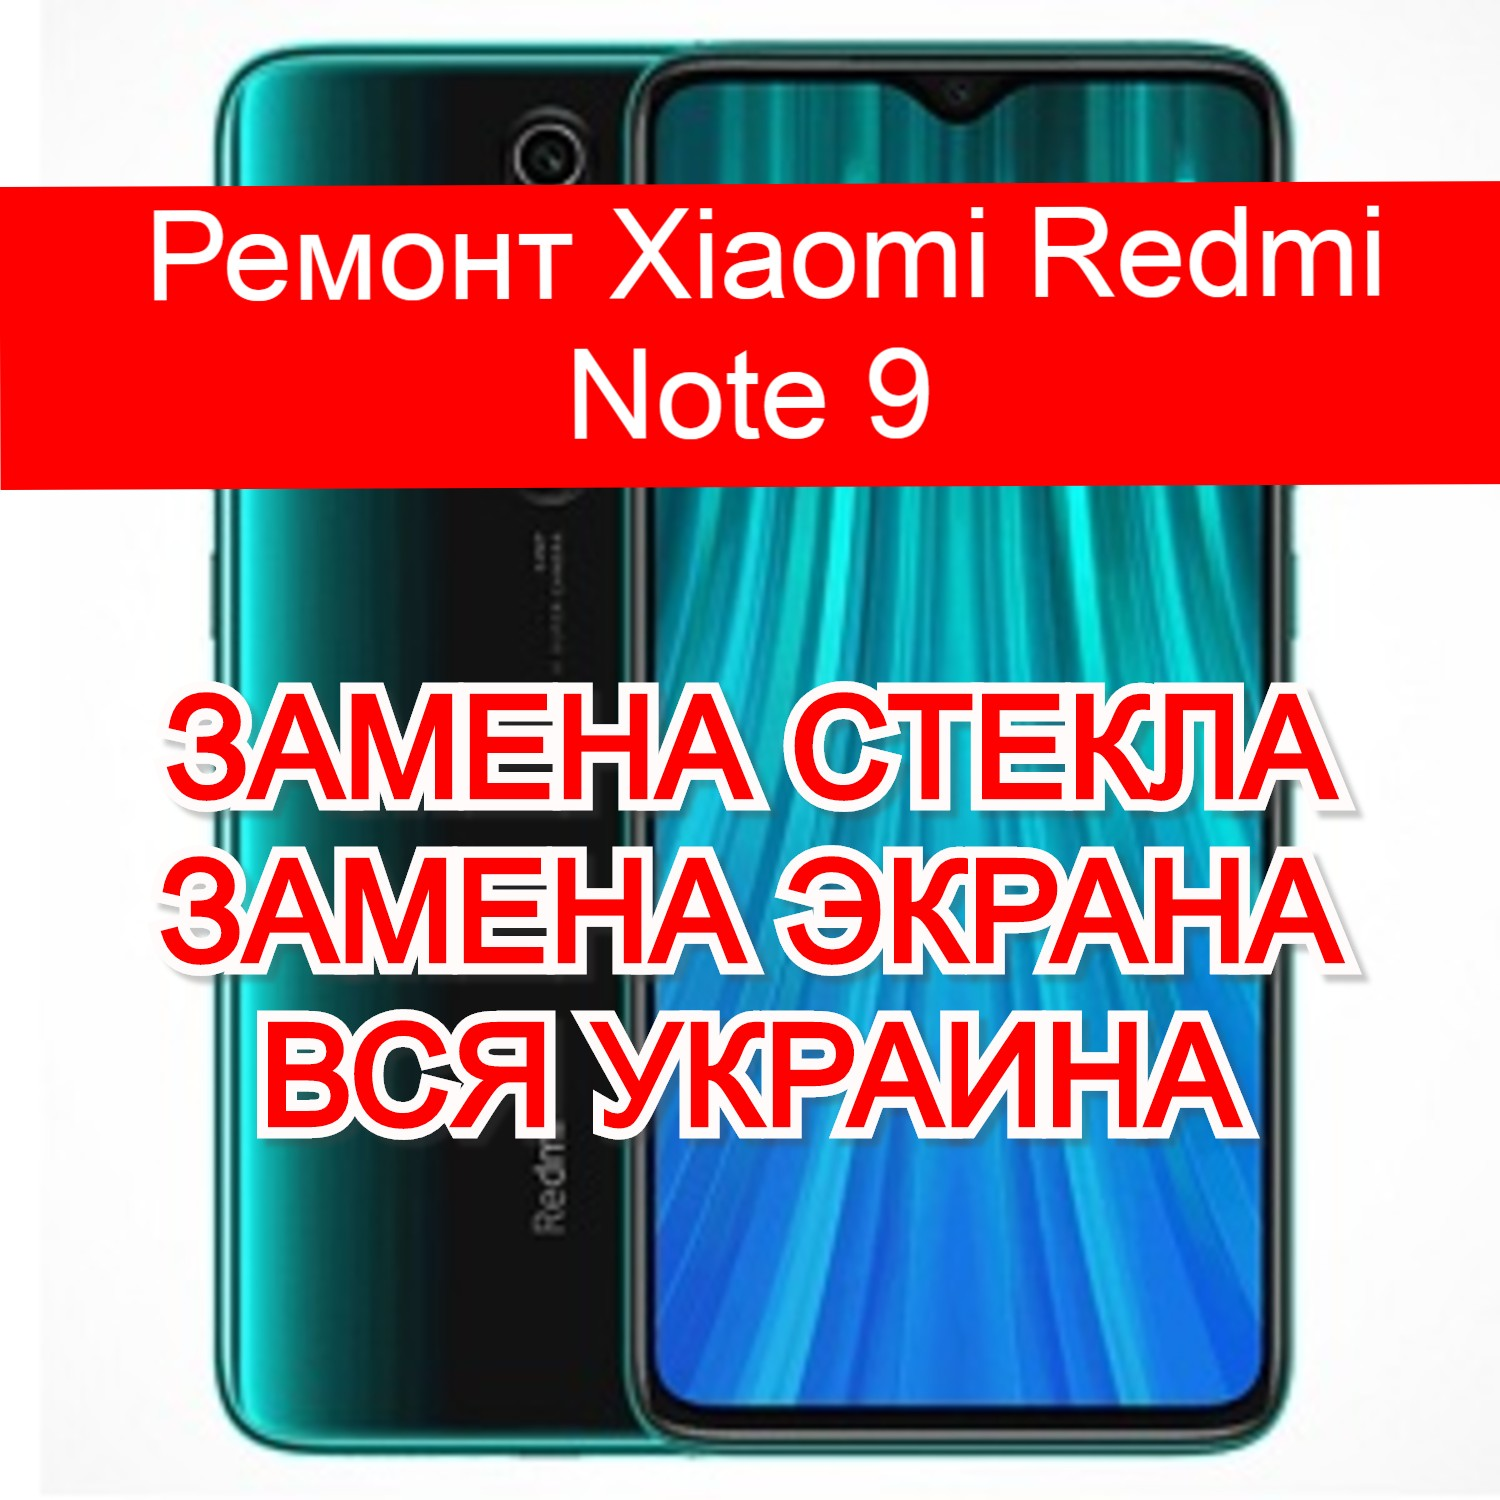 ремонт Xiaomi Redmi Note 9 замена стекла и экрана